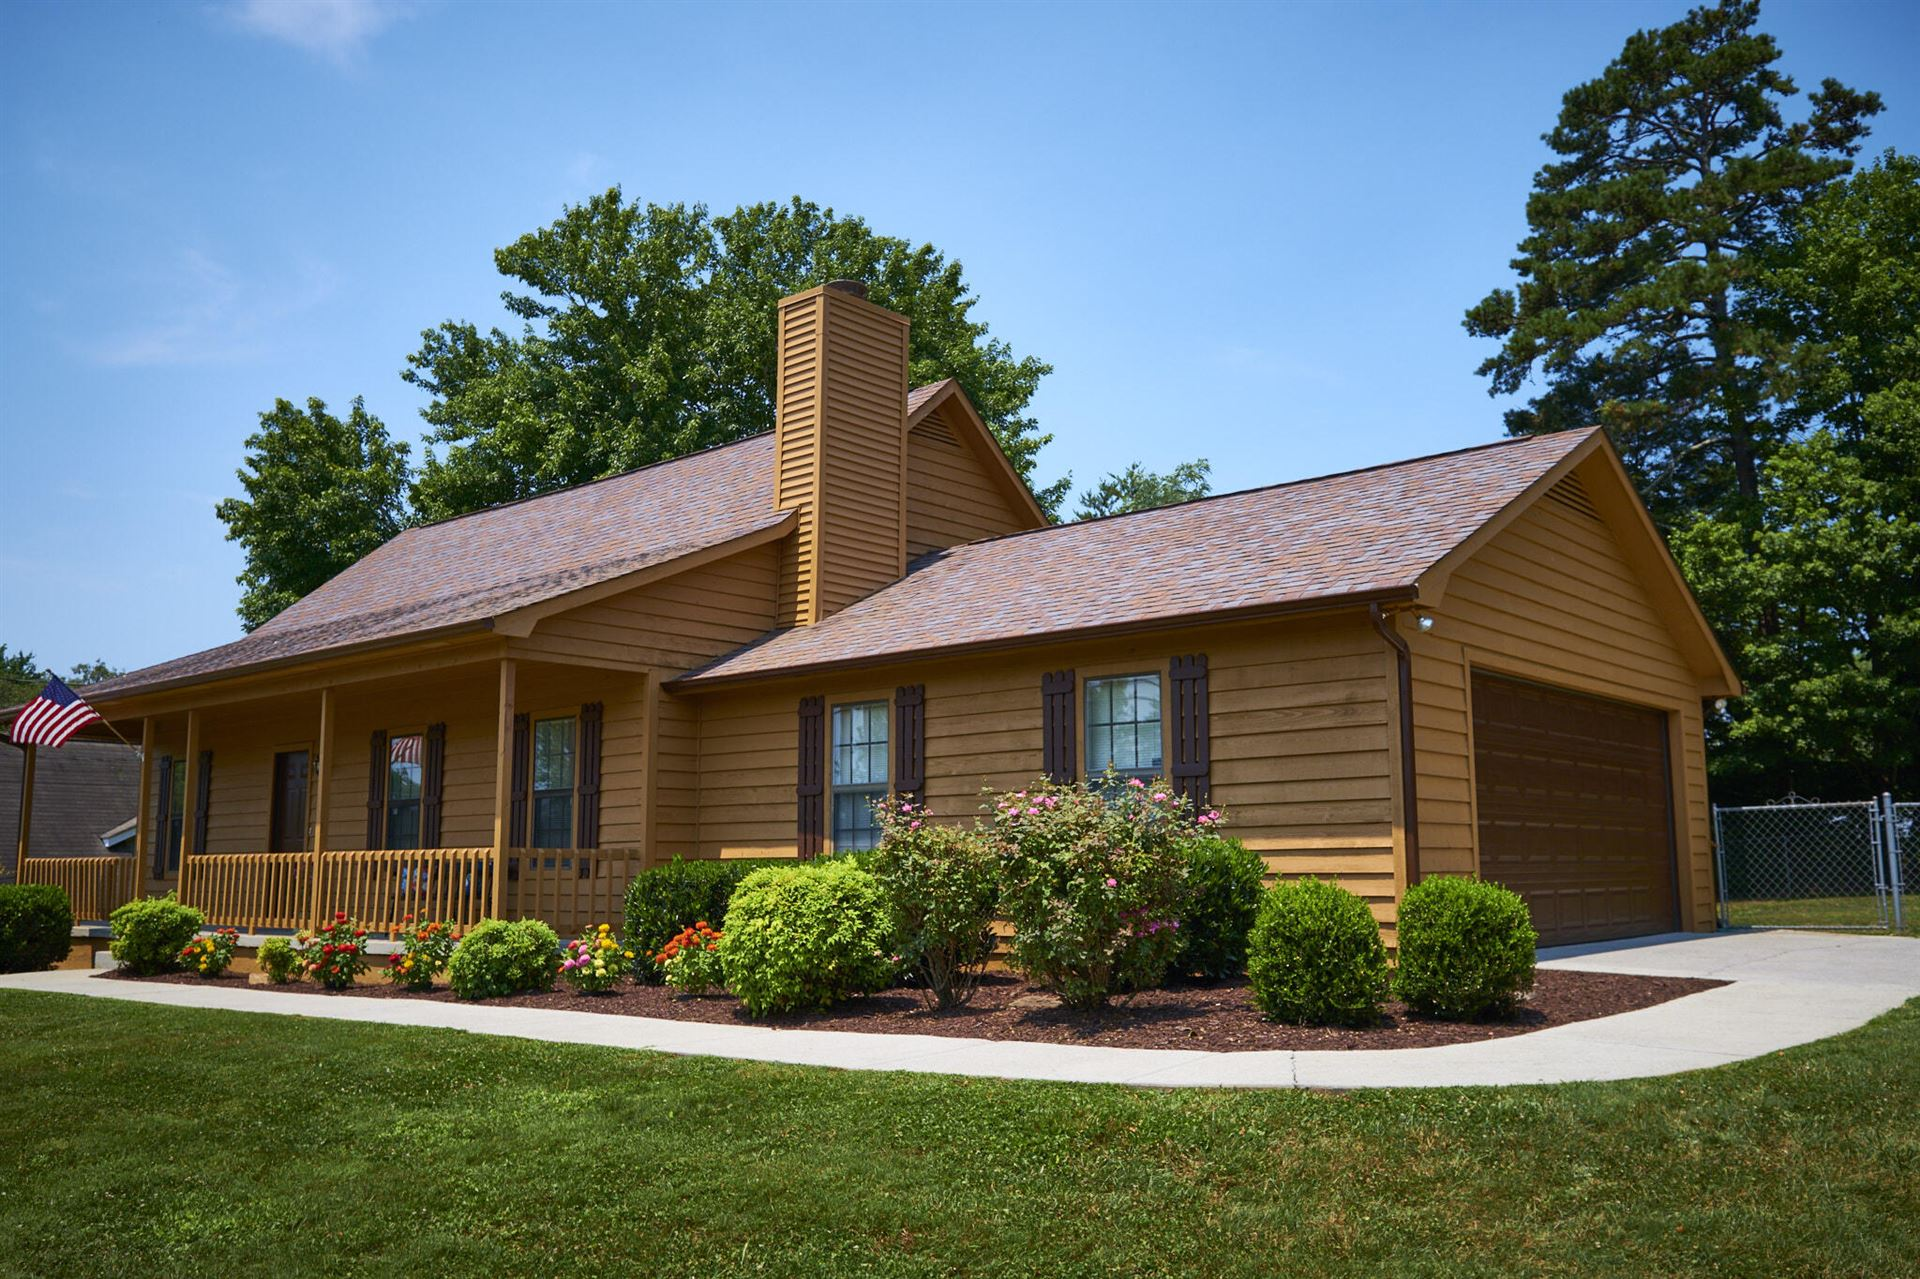 Photo of 7401 Foxlair Rd, Knoxville, TN 37918 (MLS # 1162324)